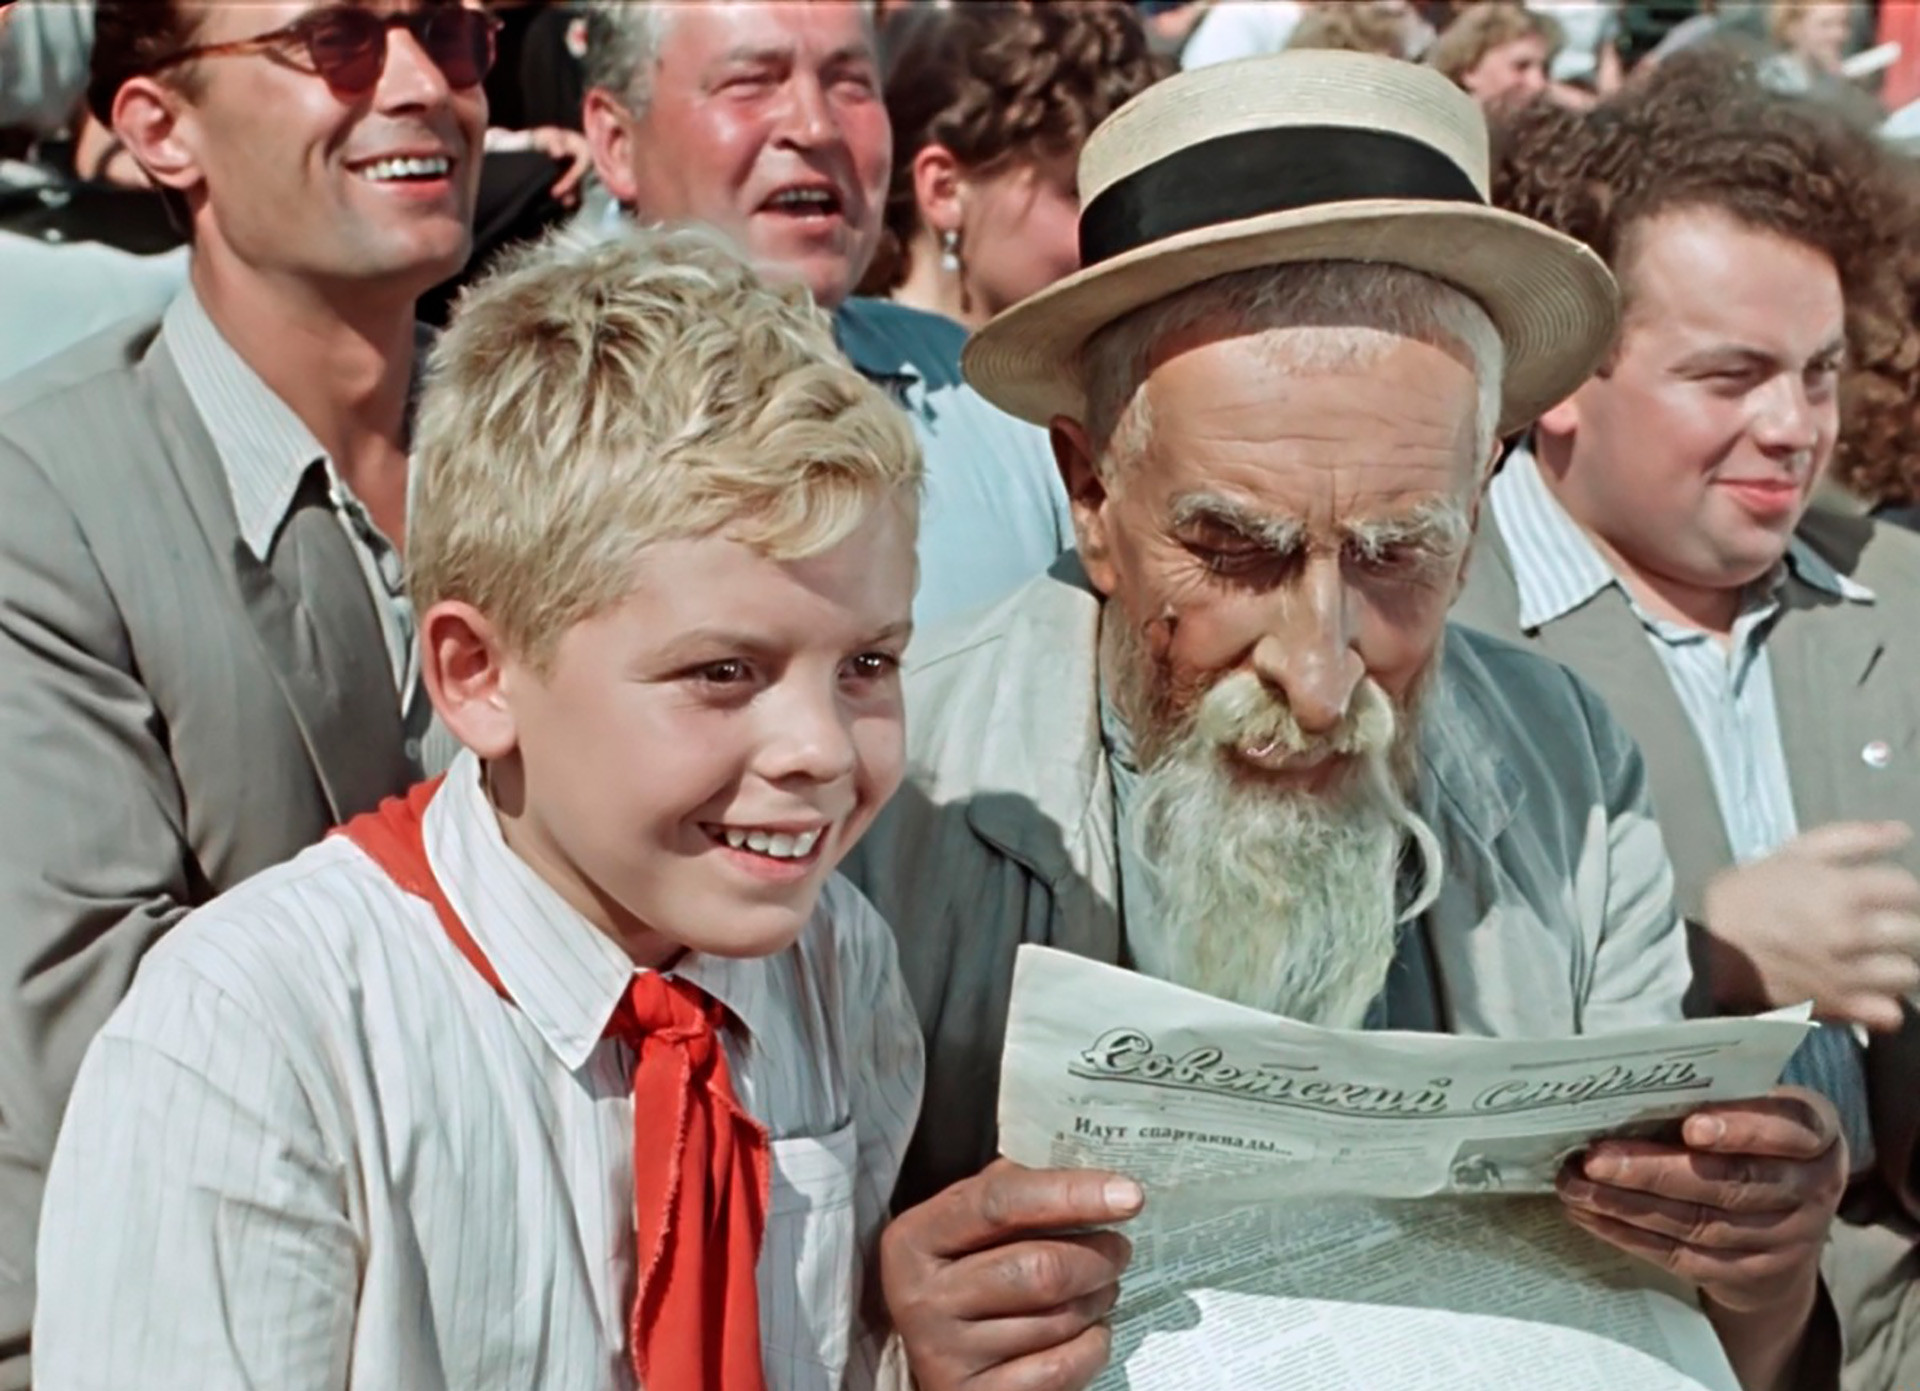 Hottabych and Volka during a football match: A screenshot from a Soviet movie